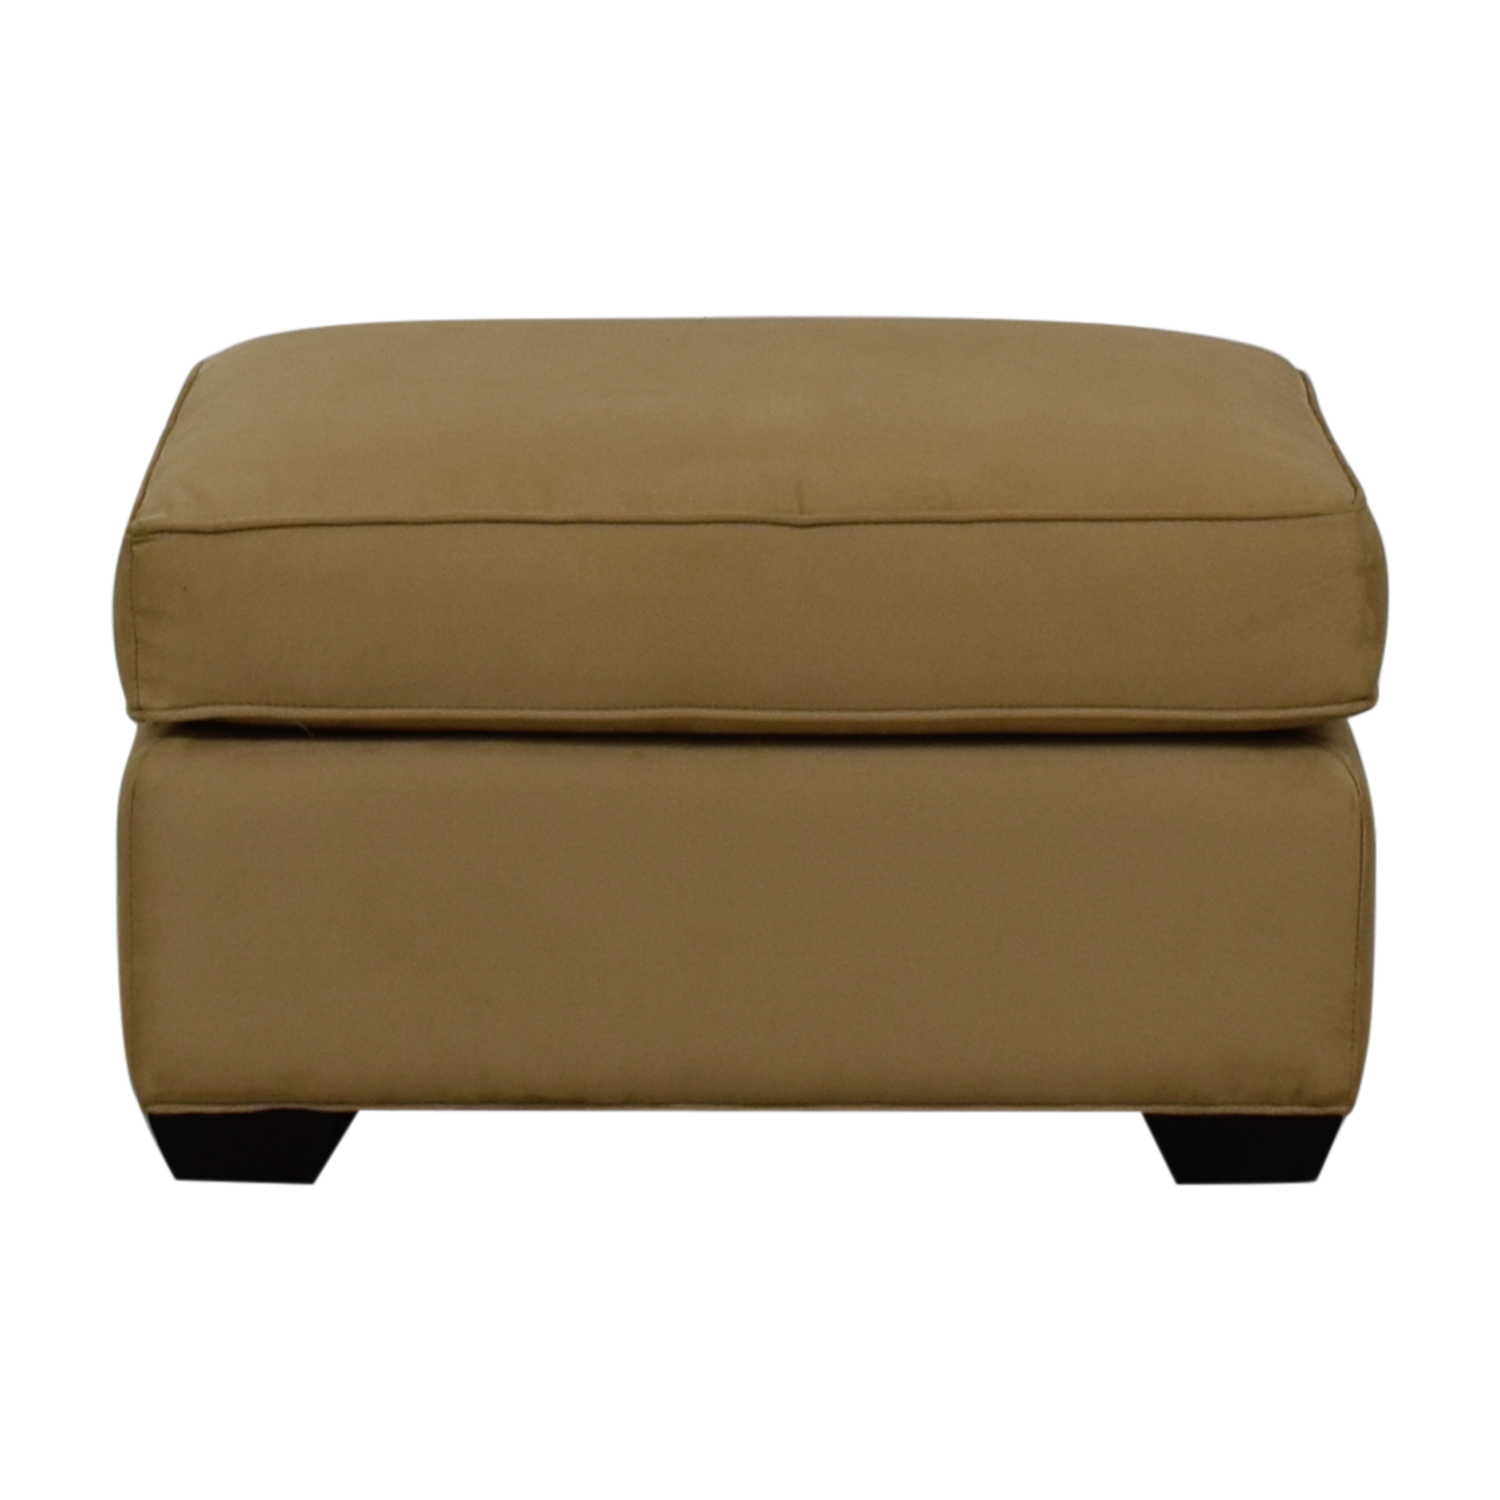 buy Crate & Barrel Davis Beige Ottoman Crate & Barrel Ottomans